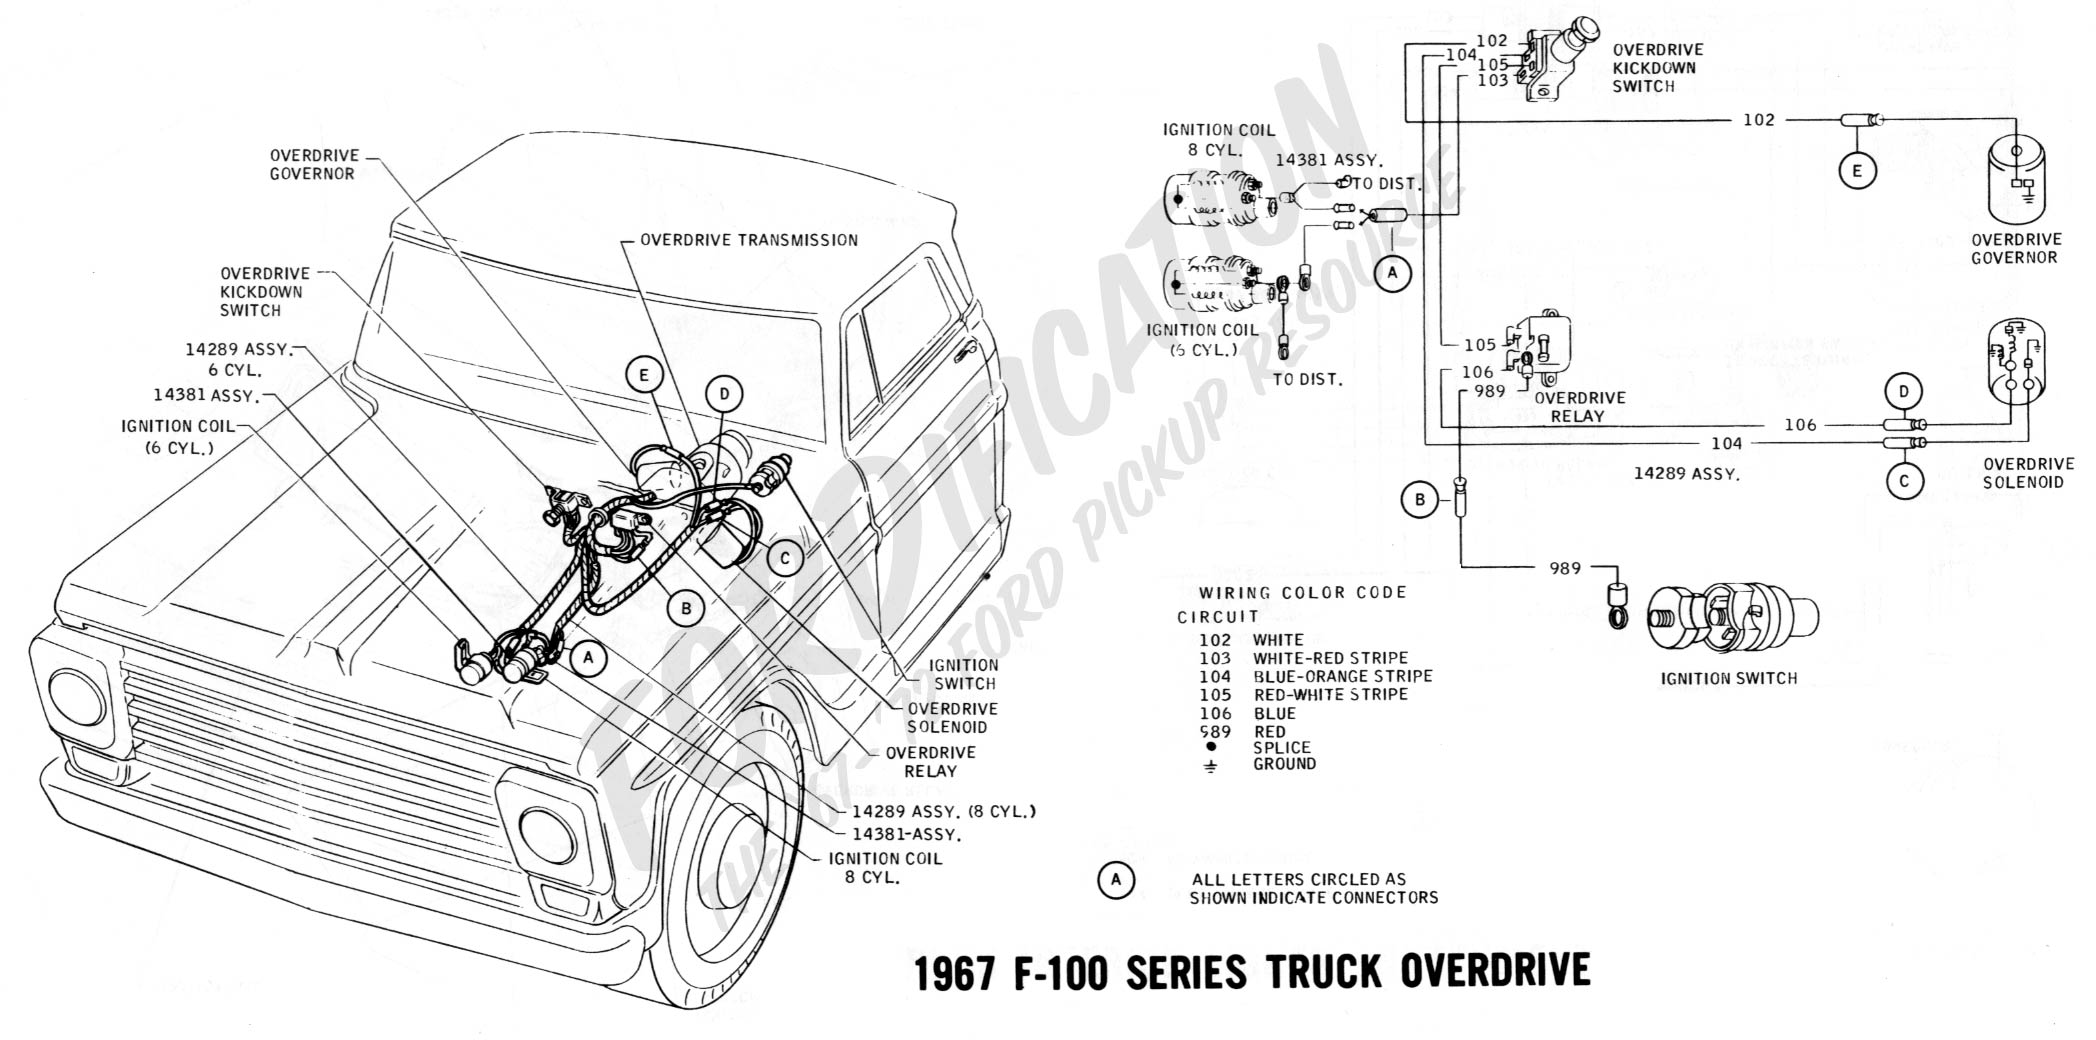 1971 Ford Truck Wiring Diagram Trusted 1960 Diagrams Technical Drawings And Schematics Section H Bronco